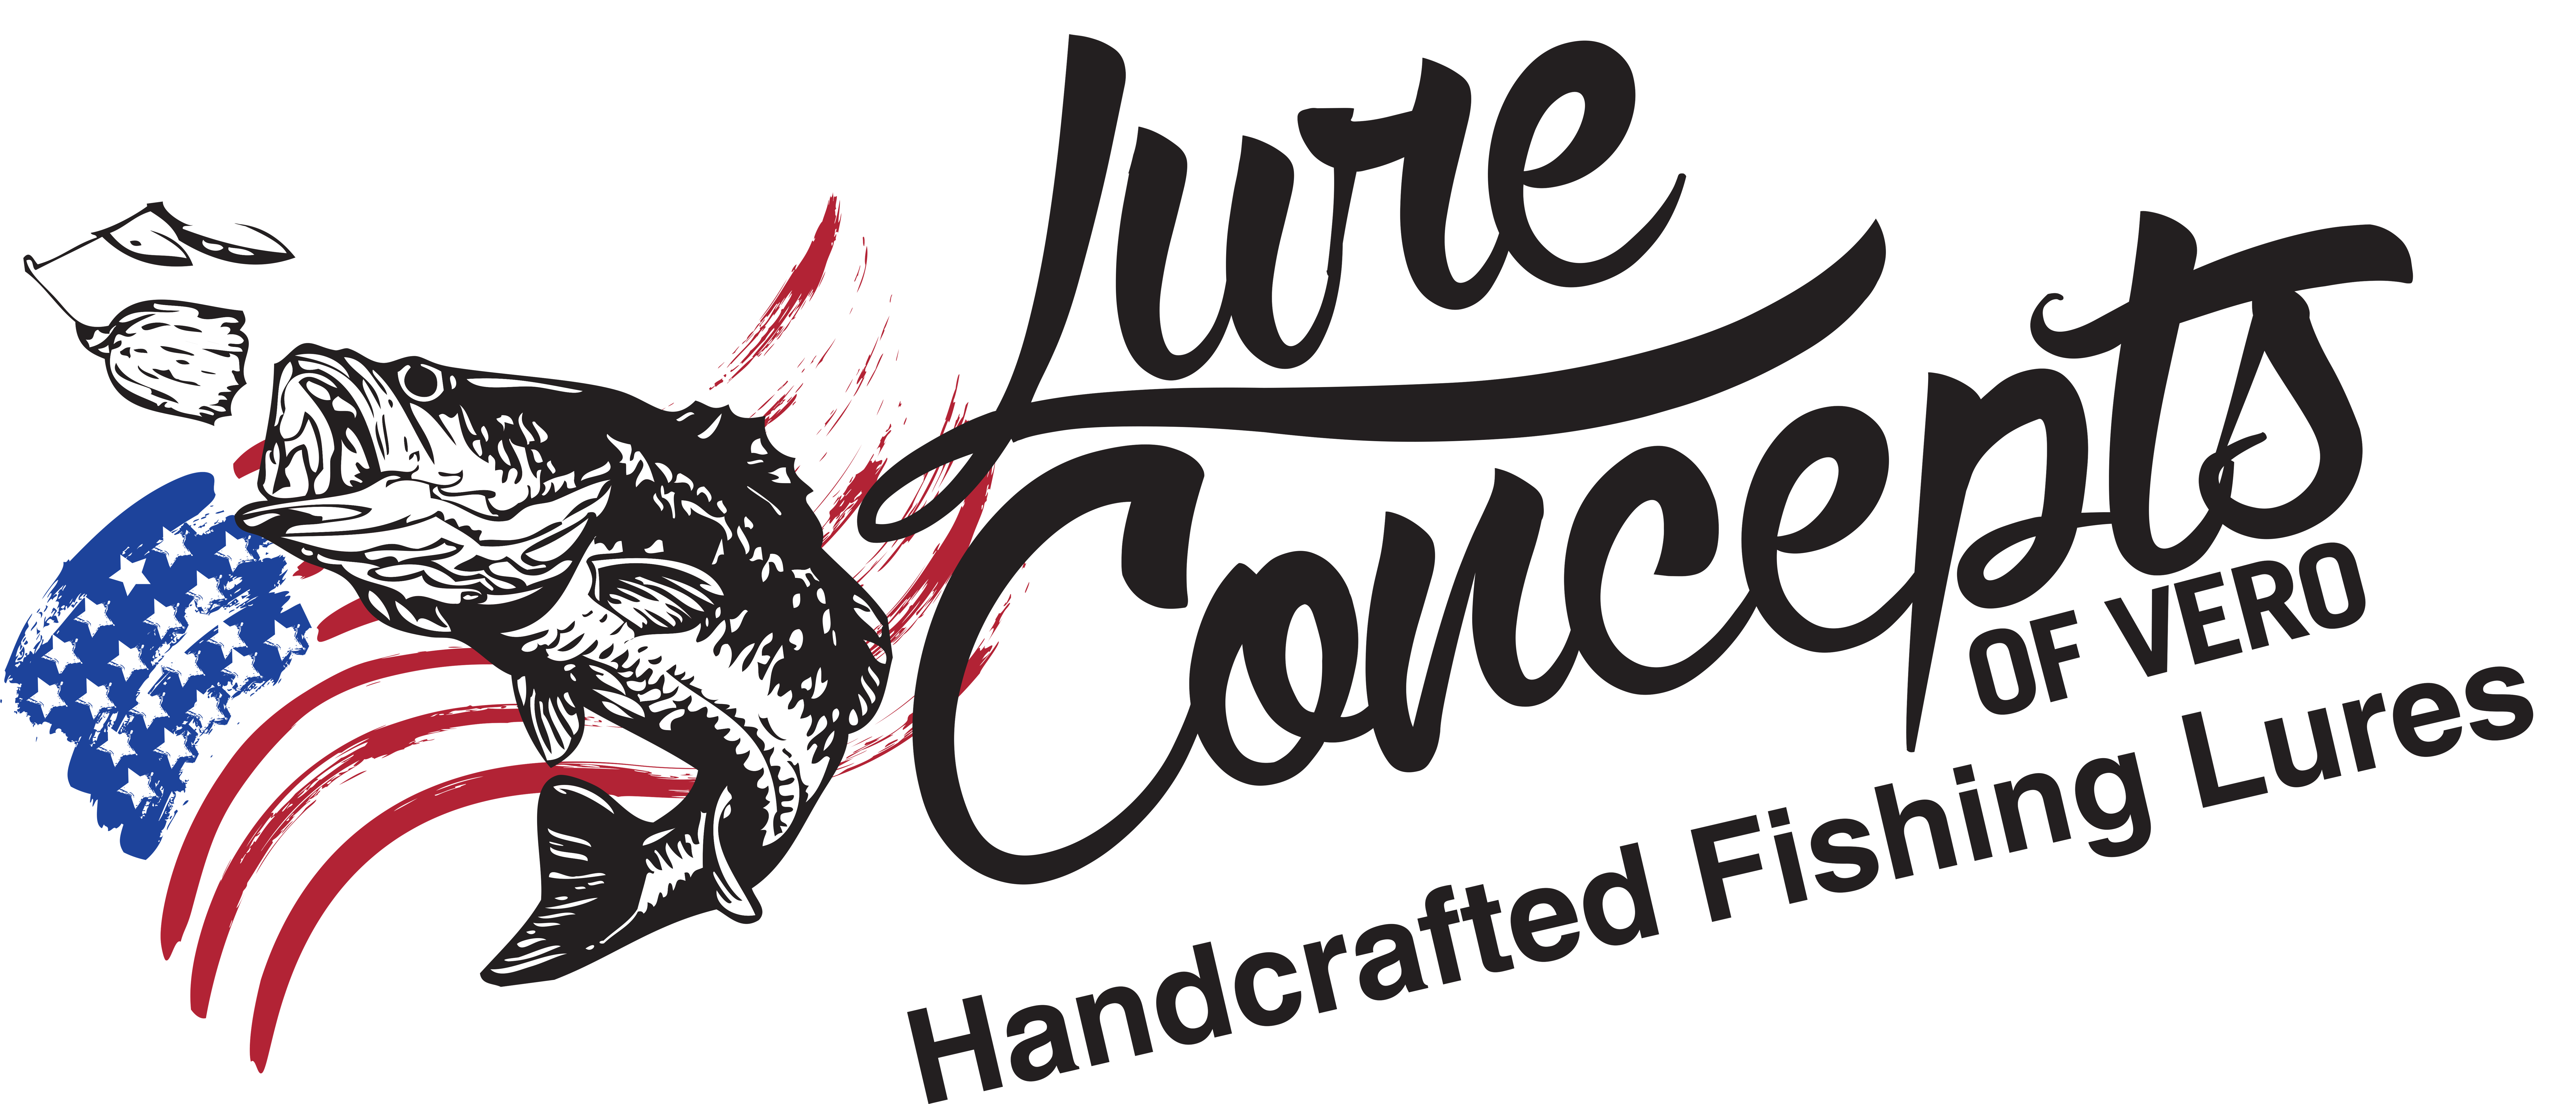 Lure Concepts of Vero Beach